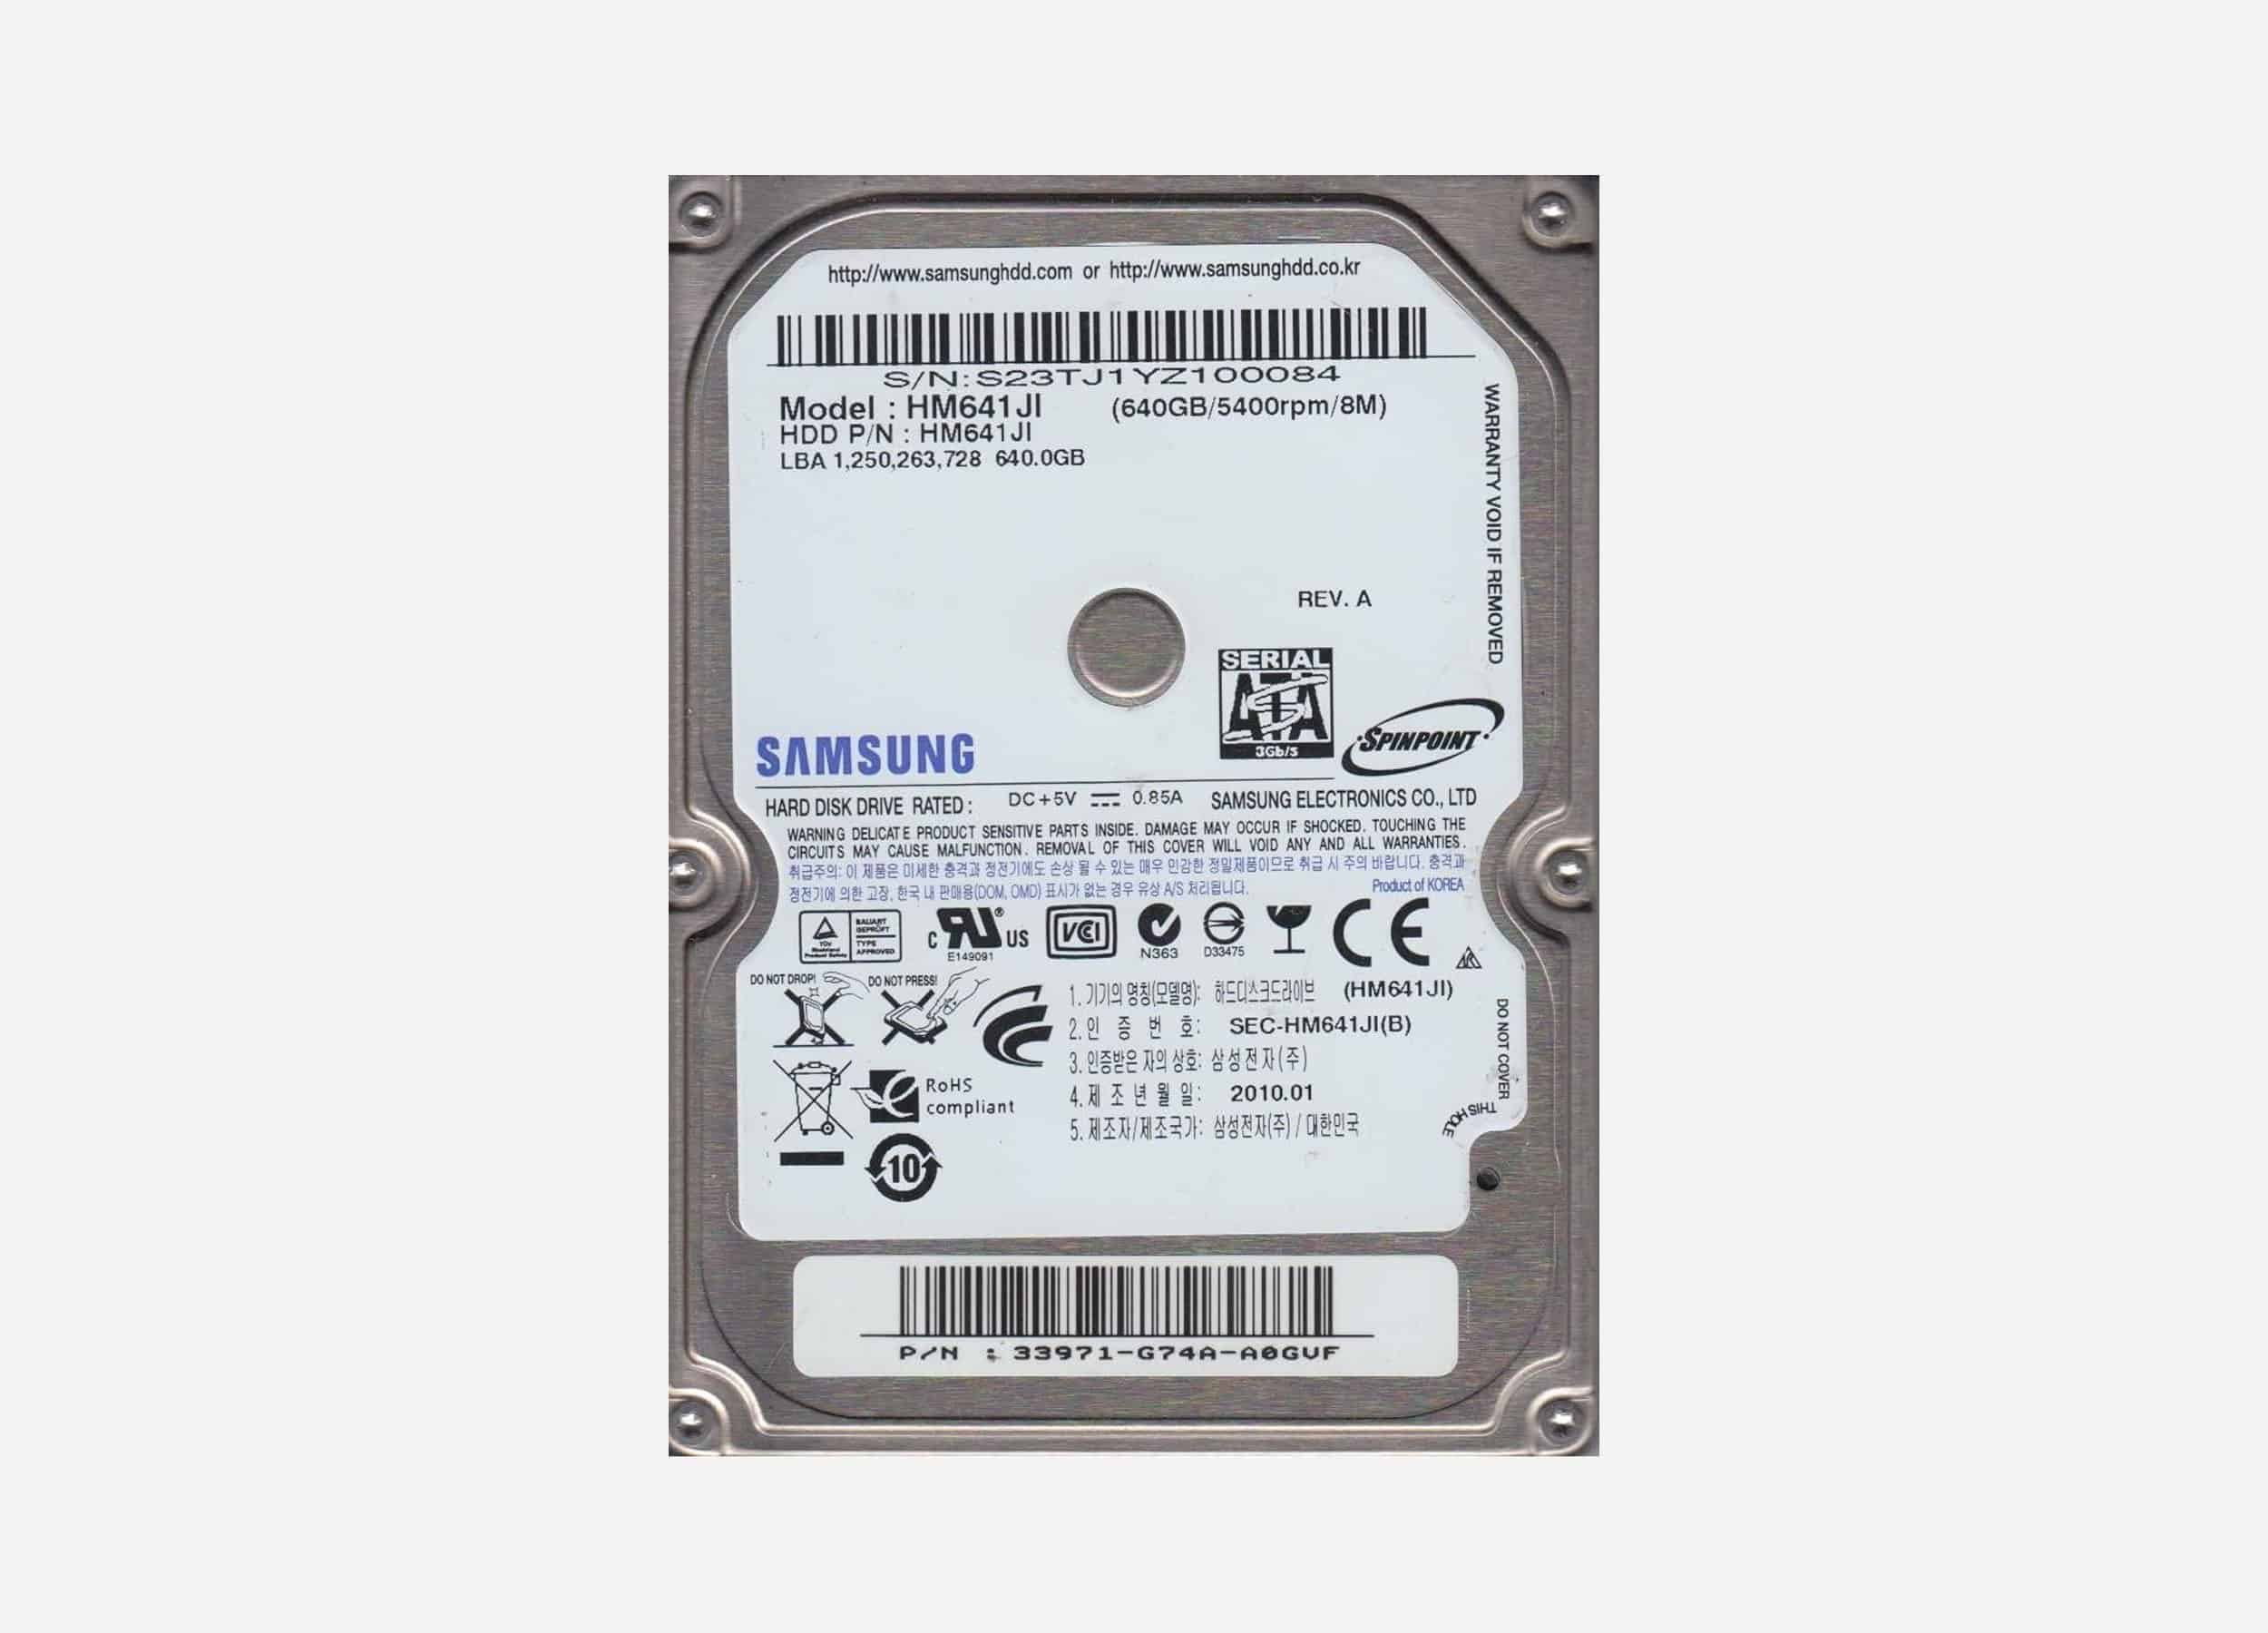 HDD Lap Samsung 640GB